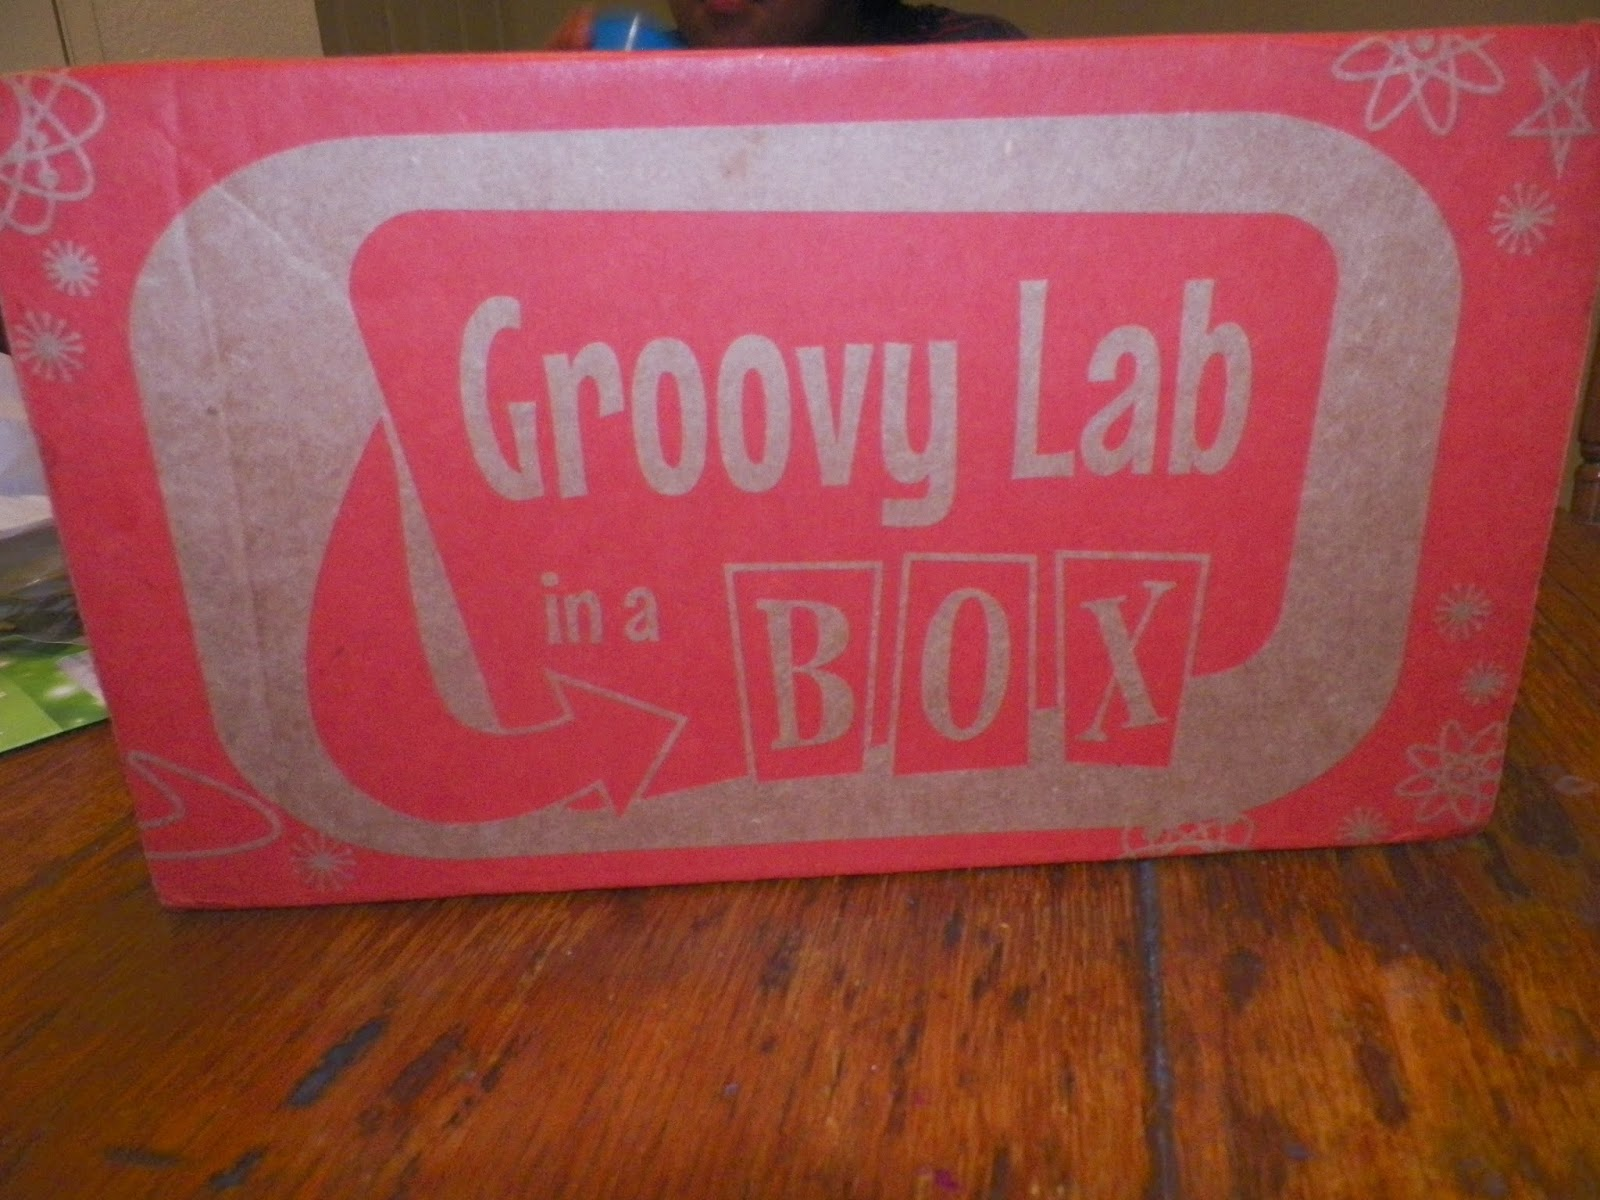 mygreatfinds: Groovy Lab in a Box Review + Giveaway 7/27 US